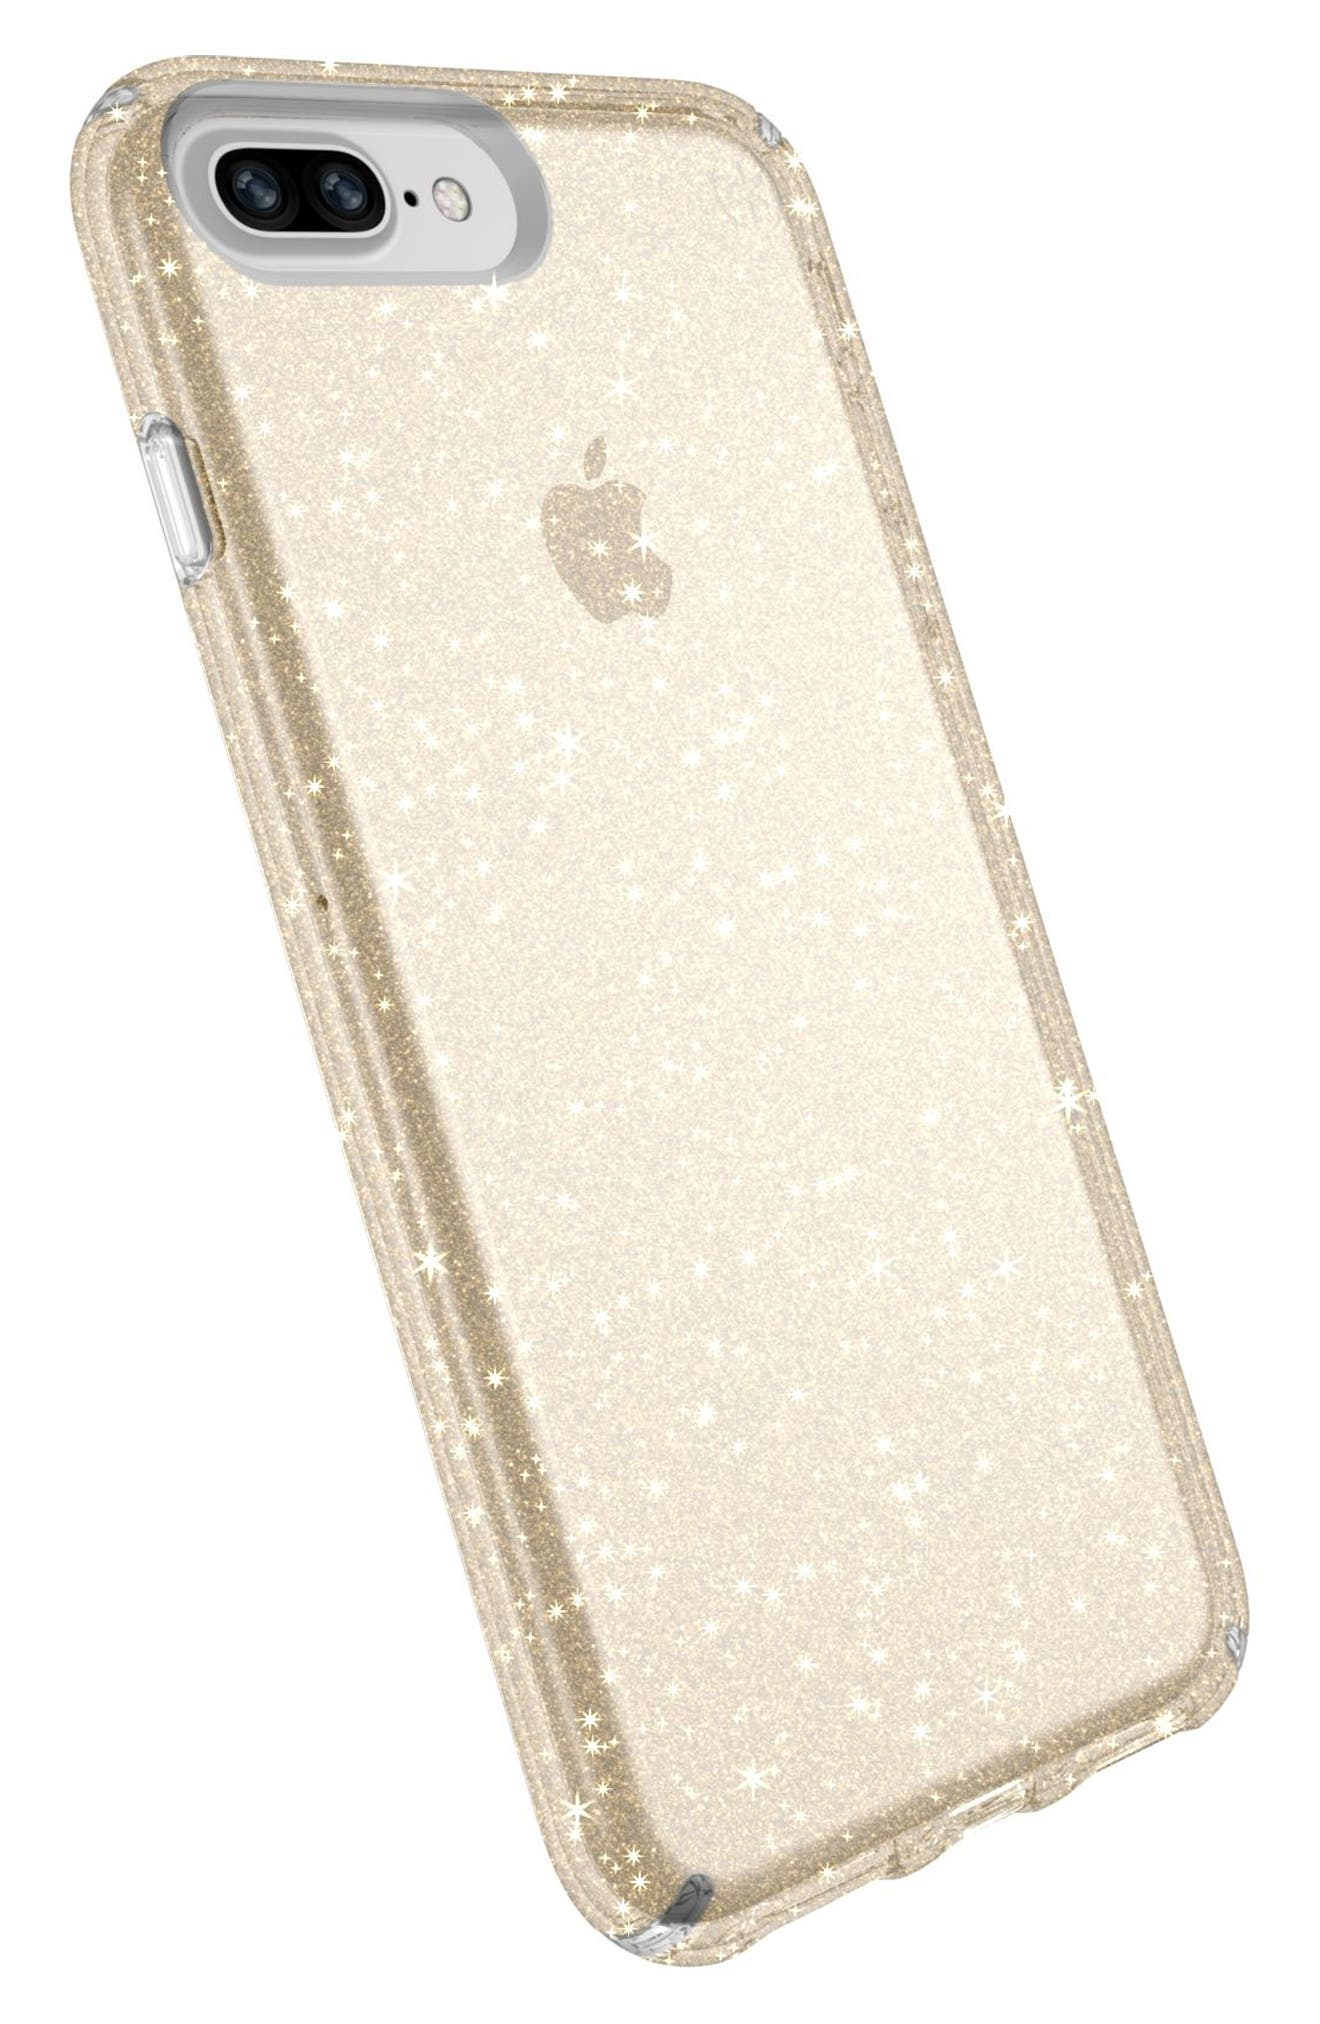 iPhone 6/6s/7/8 Plus Case,                             Alternate thumbnail 4, color,                             Clear With Gold Glitter/ Clear